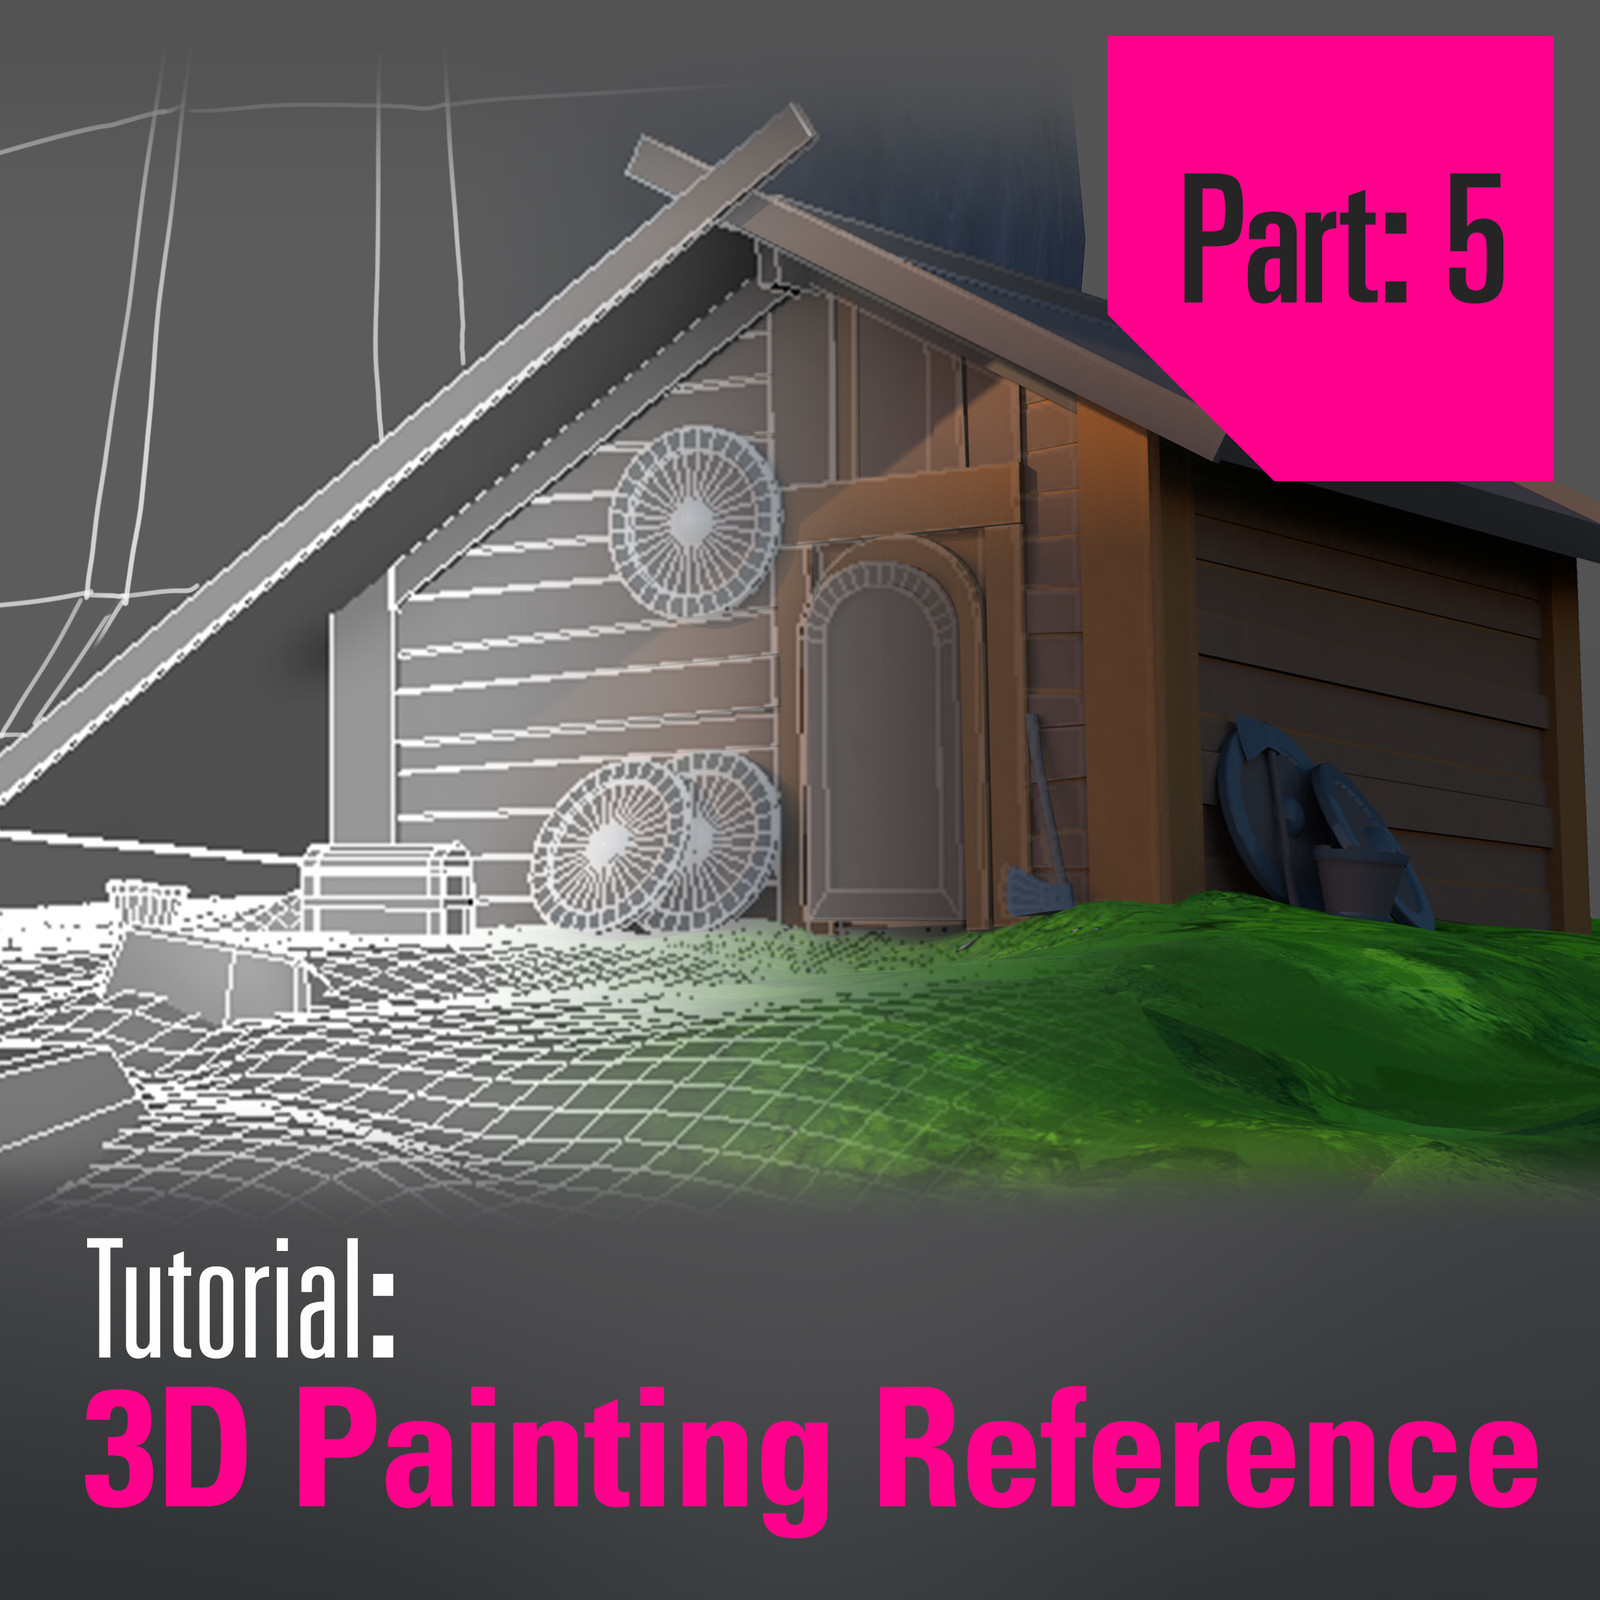 Tutorial: 3D Painting Reference Creation - Part 5